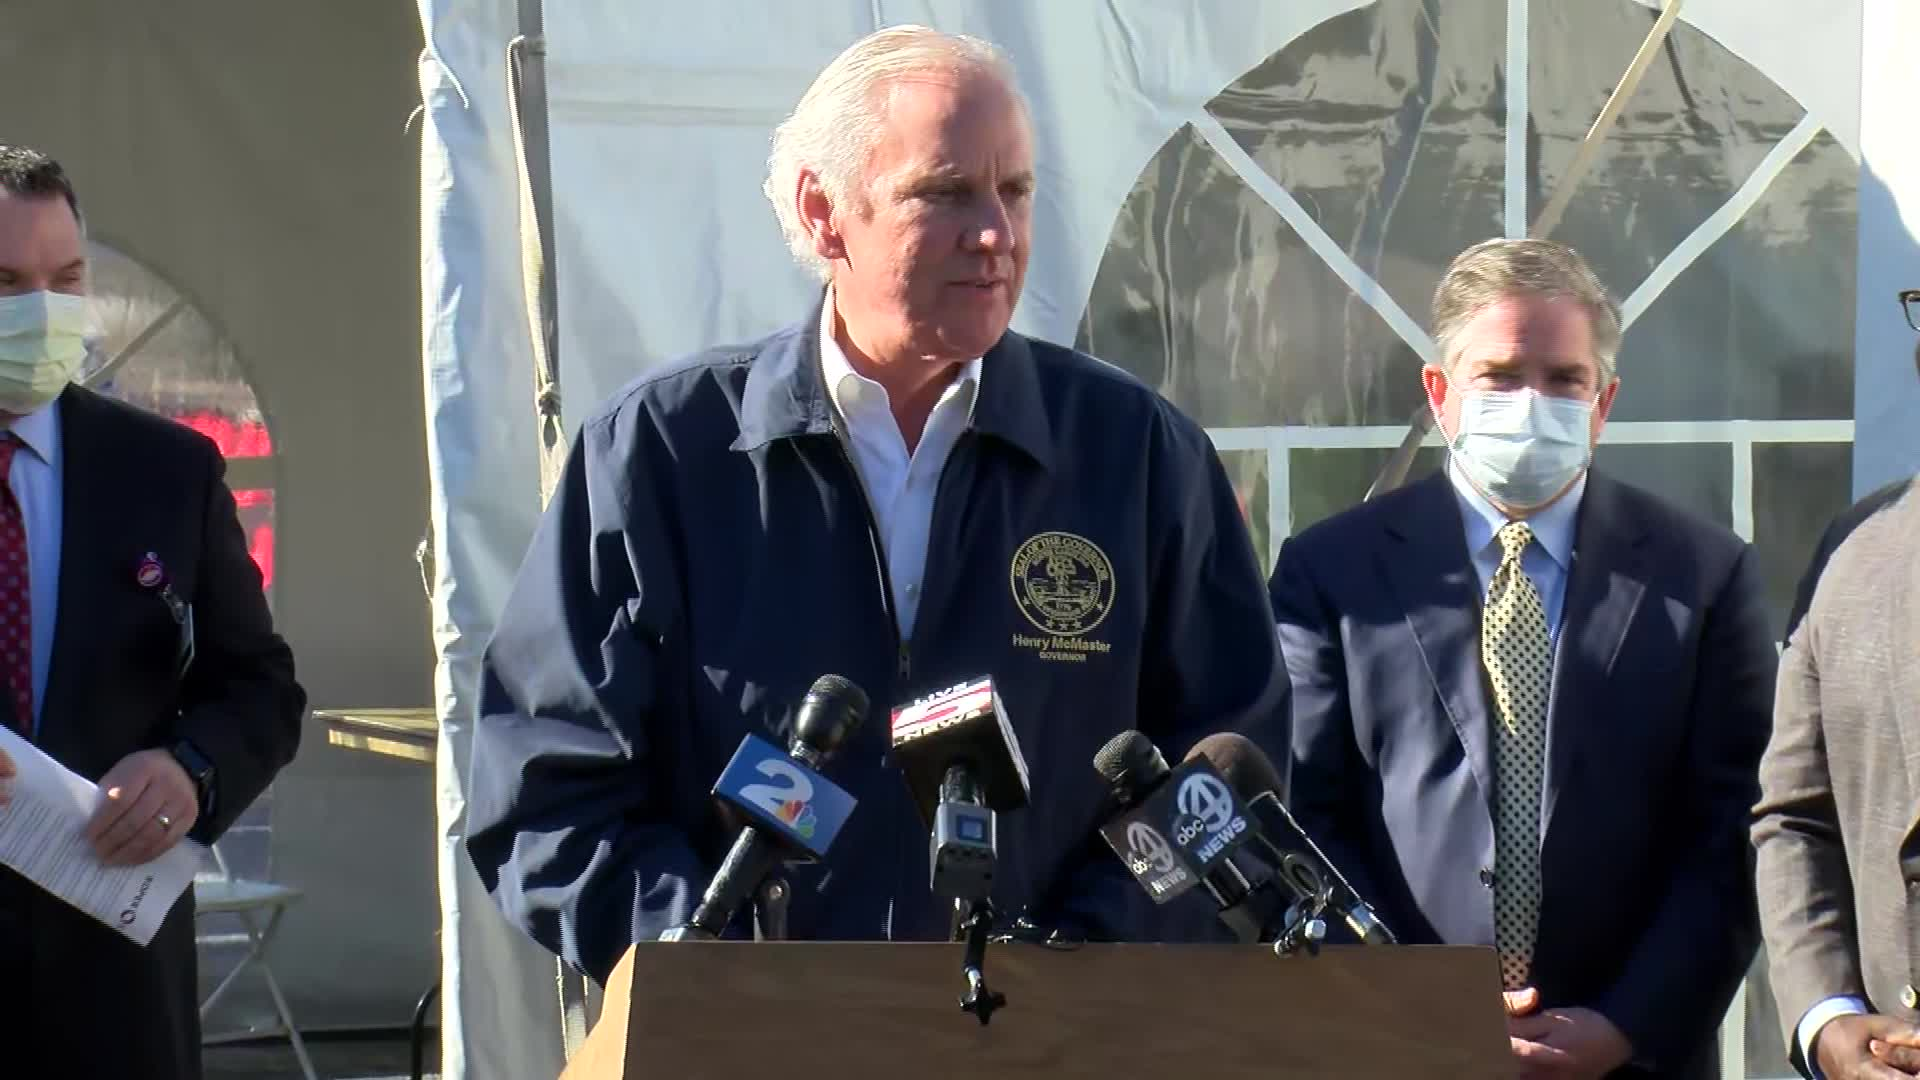 South Carolina Governor Henry McMaster speaks during a press conference in Charleston, South Carolina, on January 19.